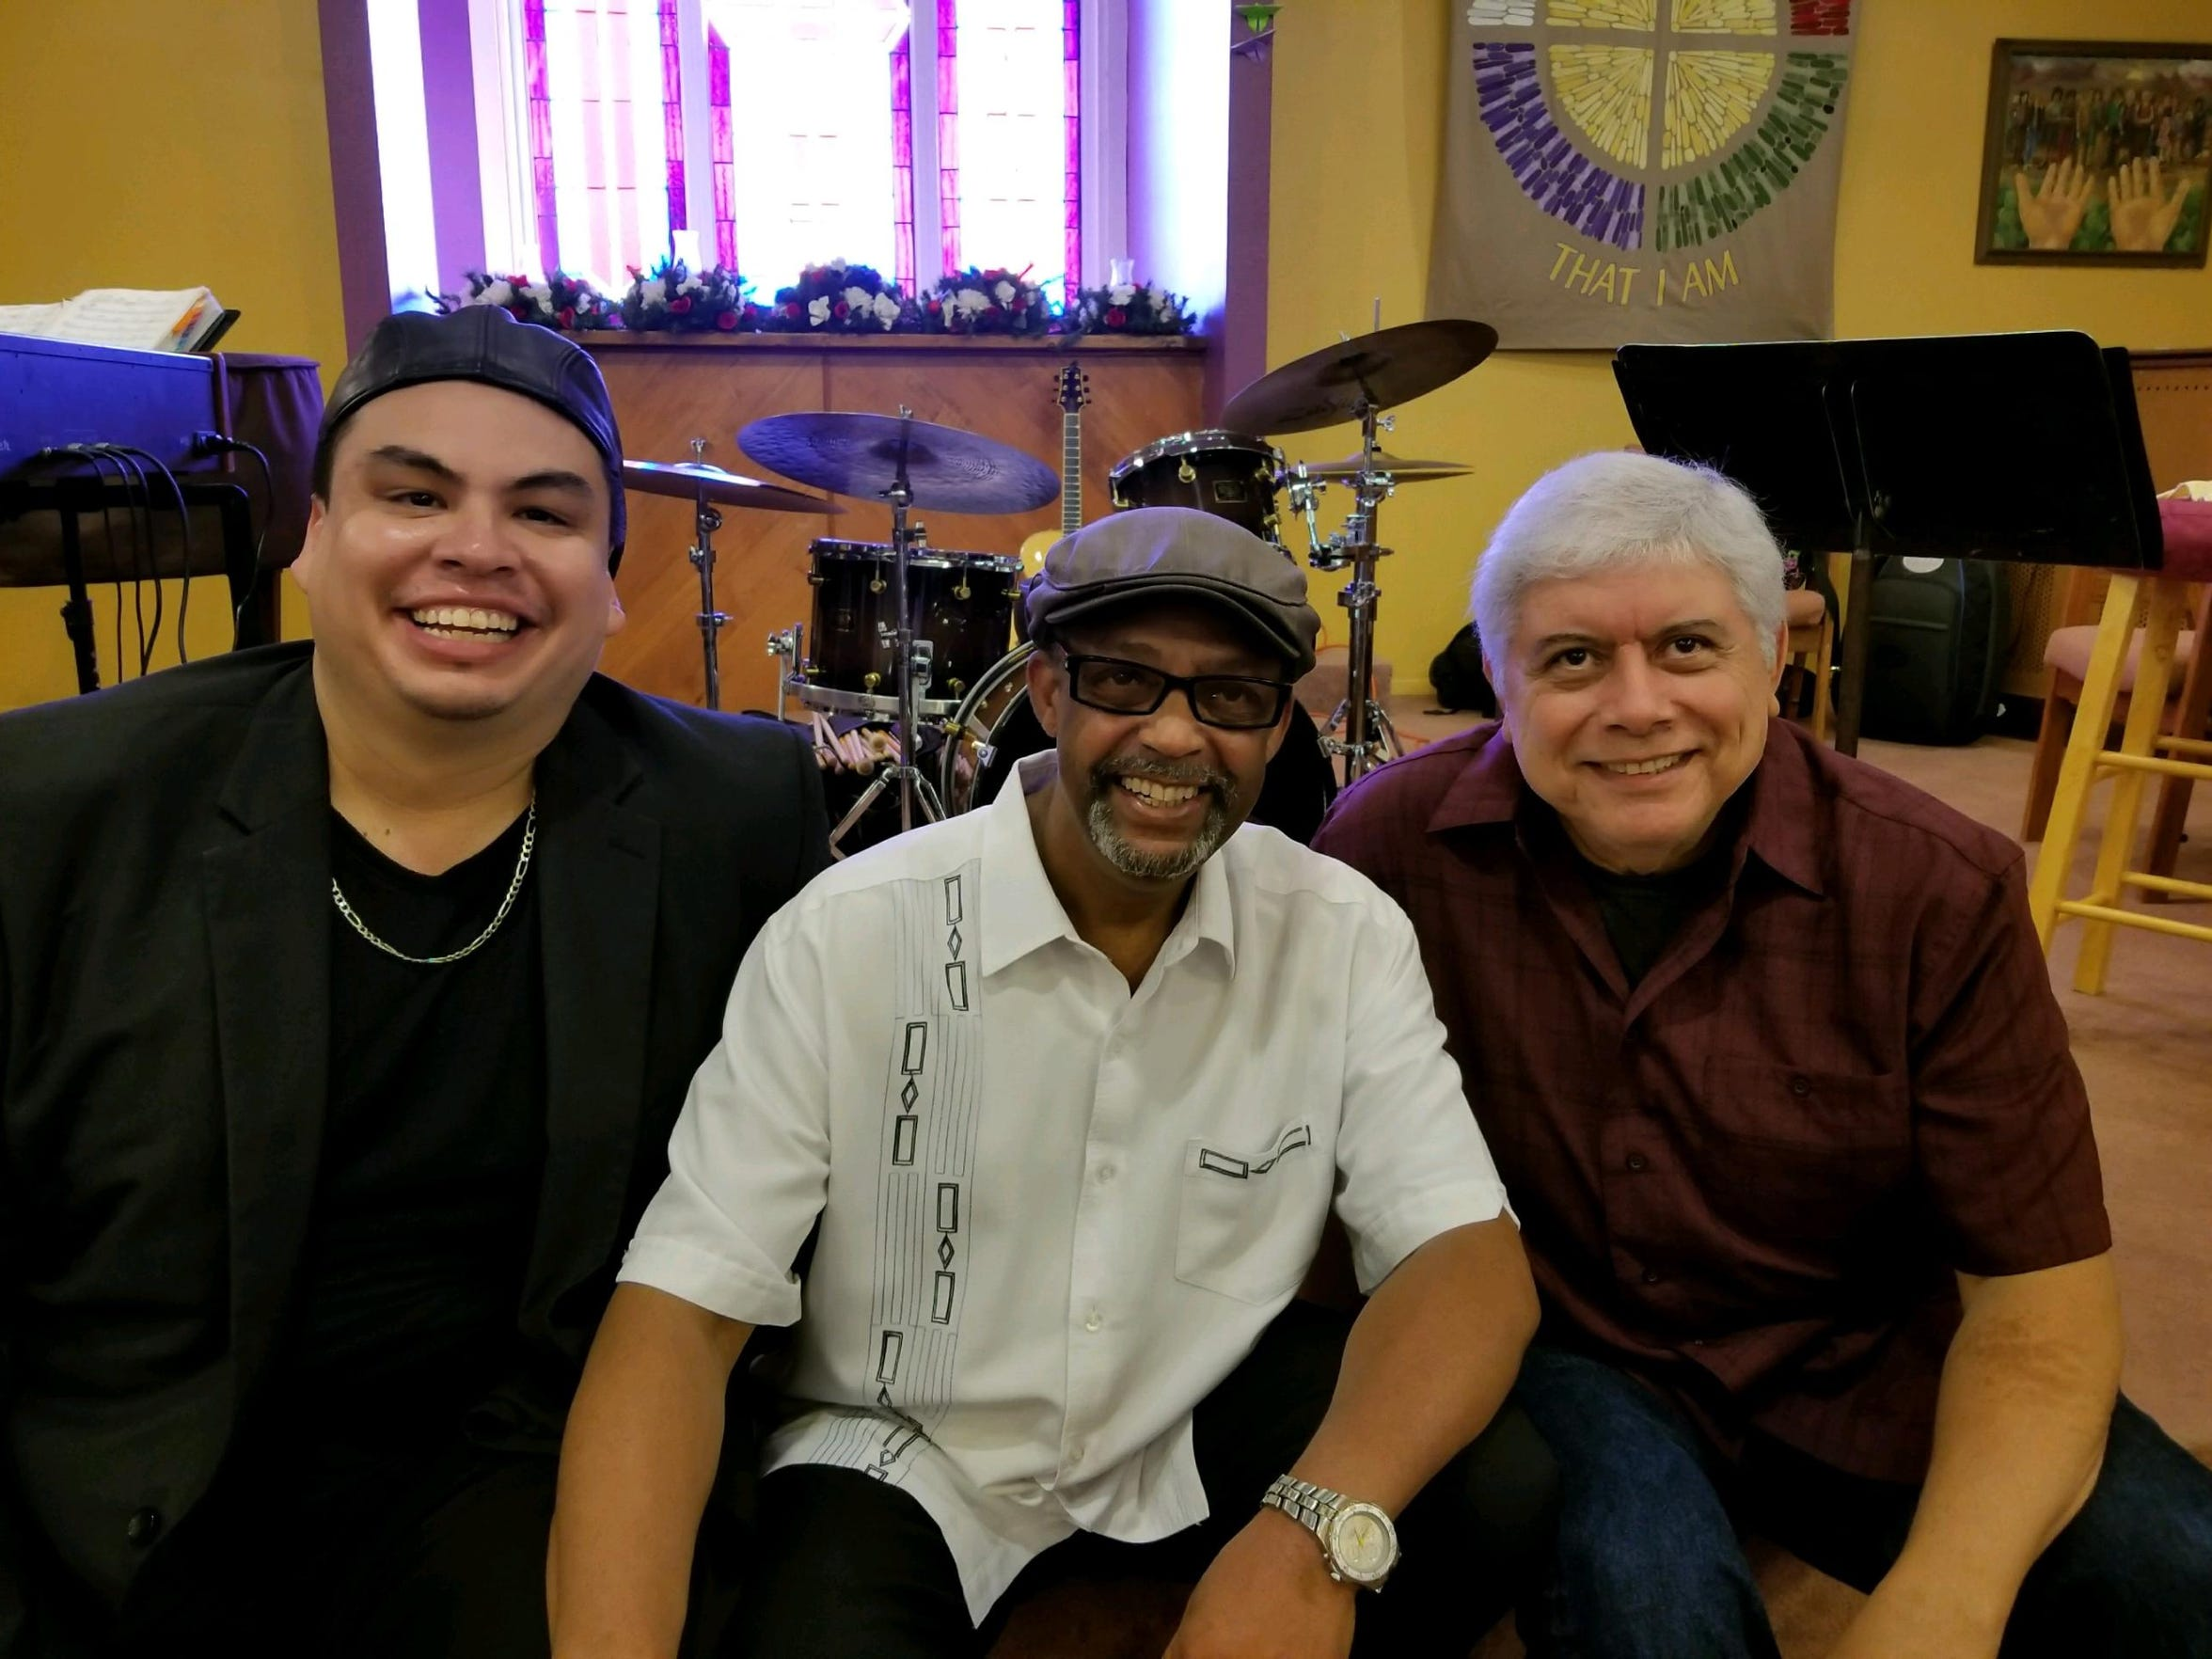 The Side Effect Organ Trio, featuring Dave Borrego on guitar, Allan Rodriguez playing the organ and Ricky Malichi on drums, will perform during the 17th annual Jazz Happening in Mesilla.